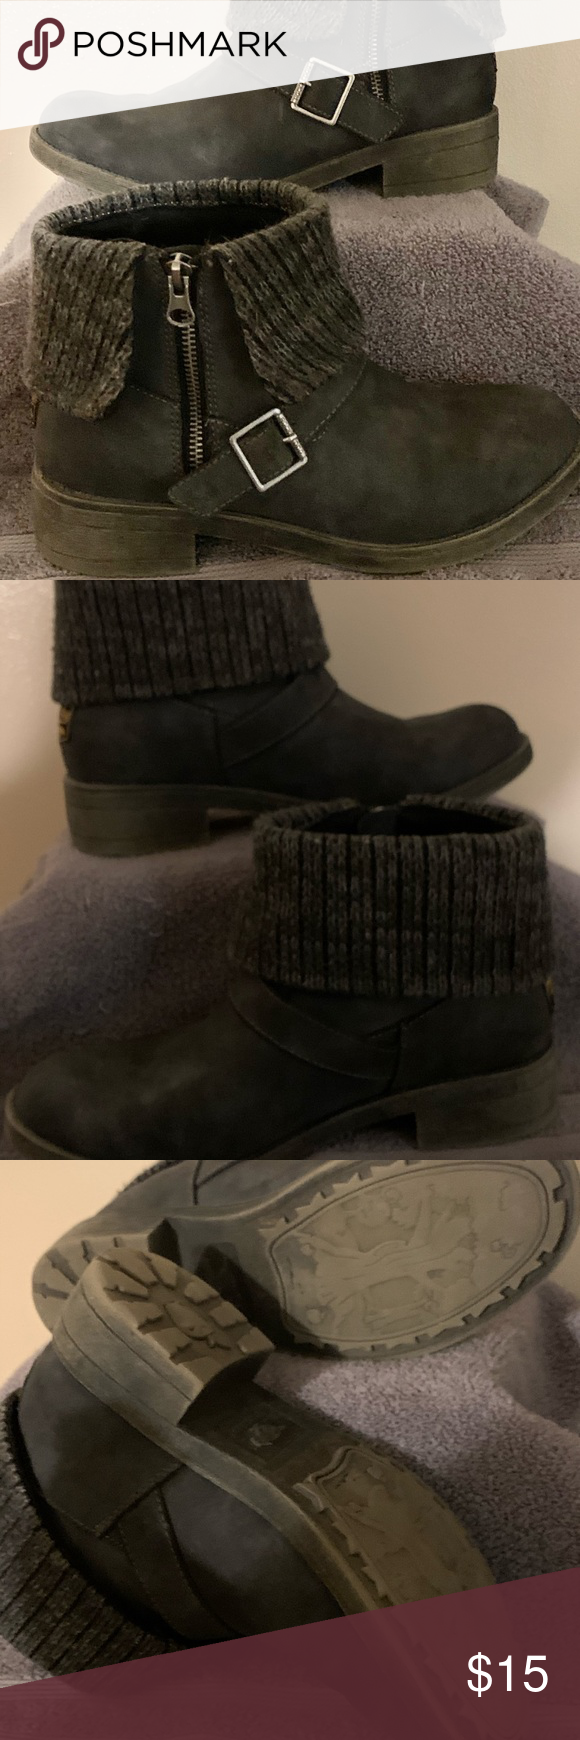 Rocket Dog Gray Ankle Boots Rocket Dog Gray ankle Boots, slight wear, perfect boots to wear with skinny jeans. Rocket Dog Shoes Ankle Boots & Booties #skinnyjeansandankleboots